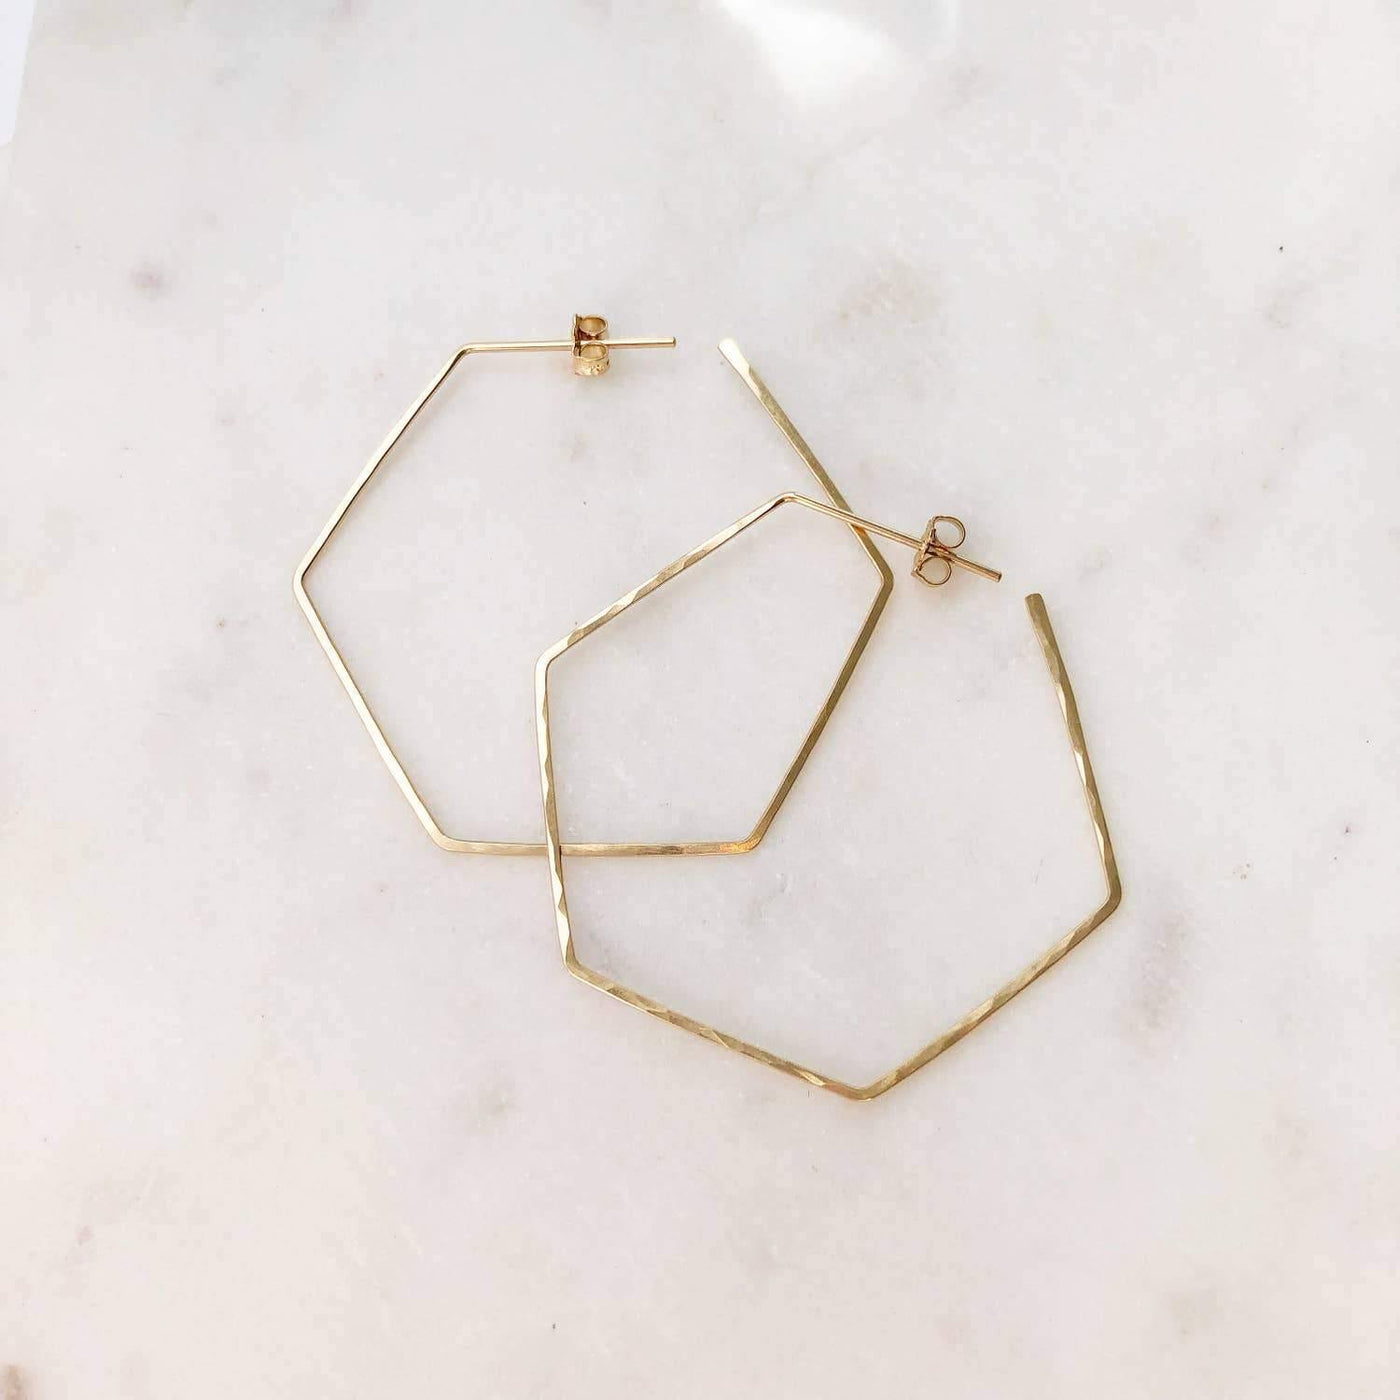 Jewelry + Accessories - Carter + Main